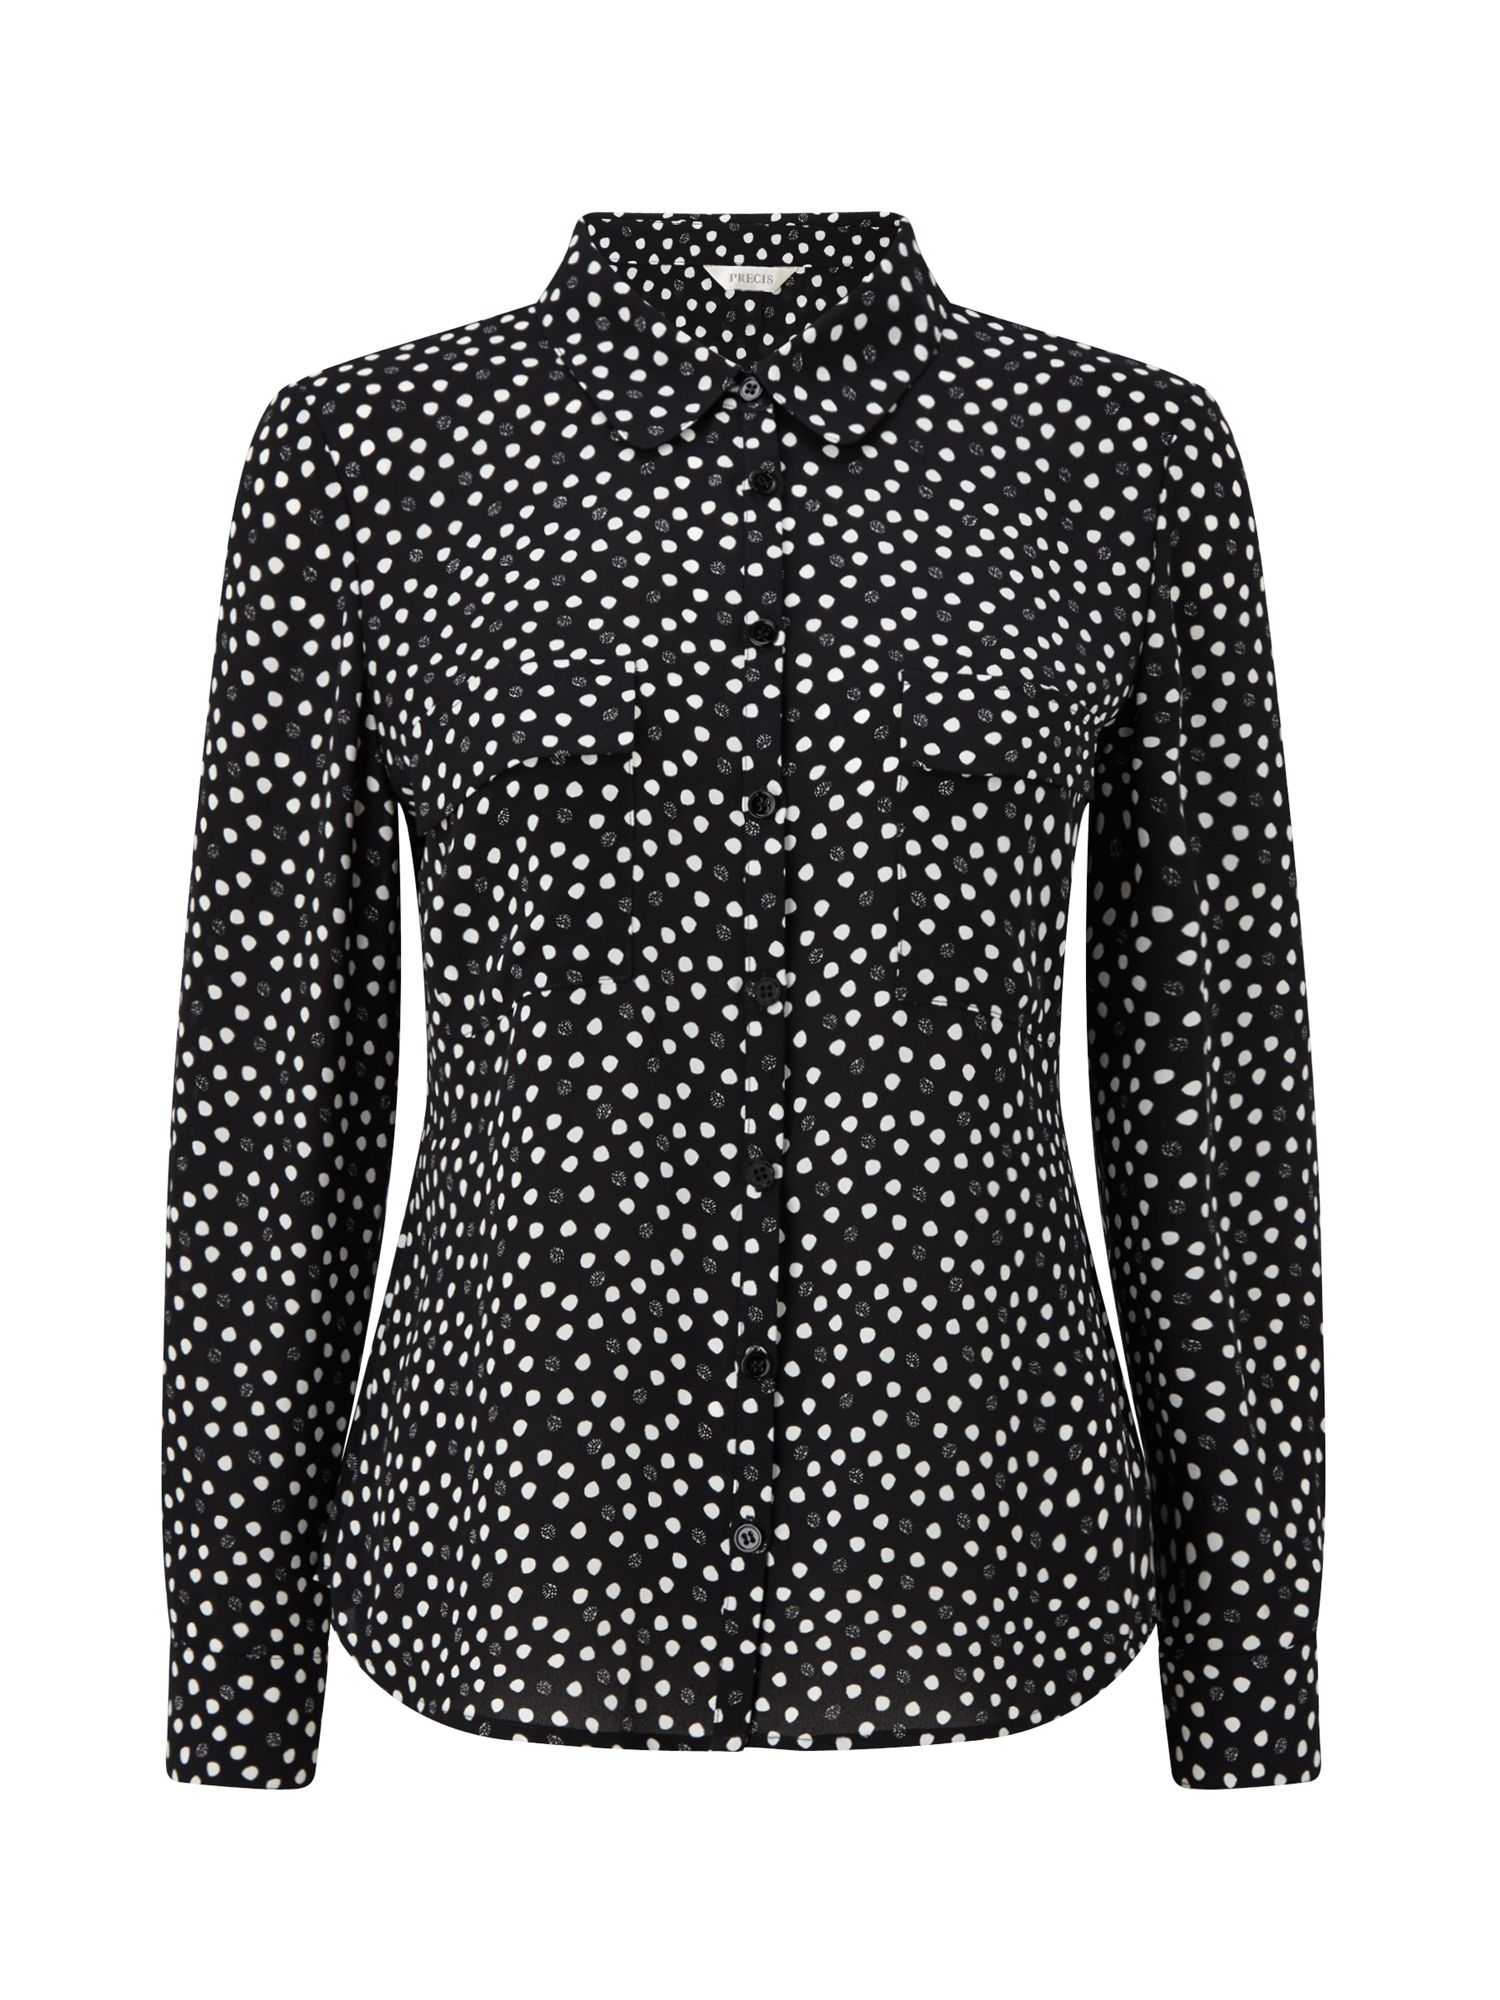 Precis Petite Ivy Spot Print Blouse, Multi-Coloured